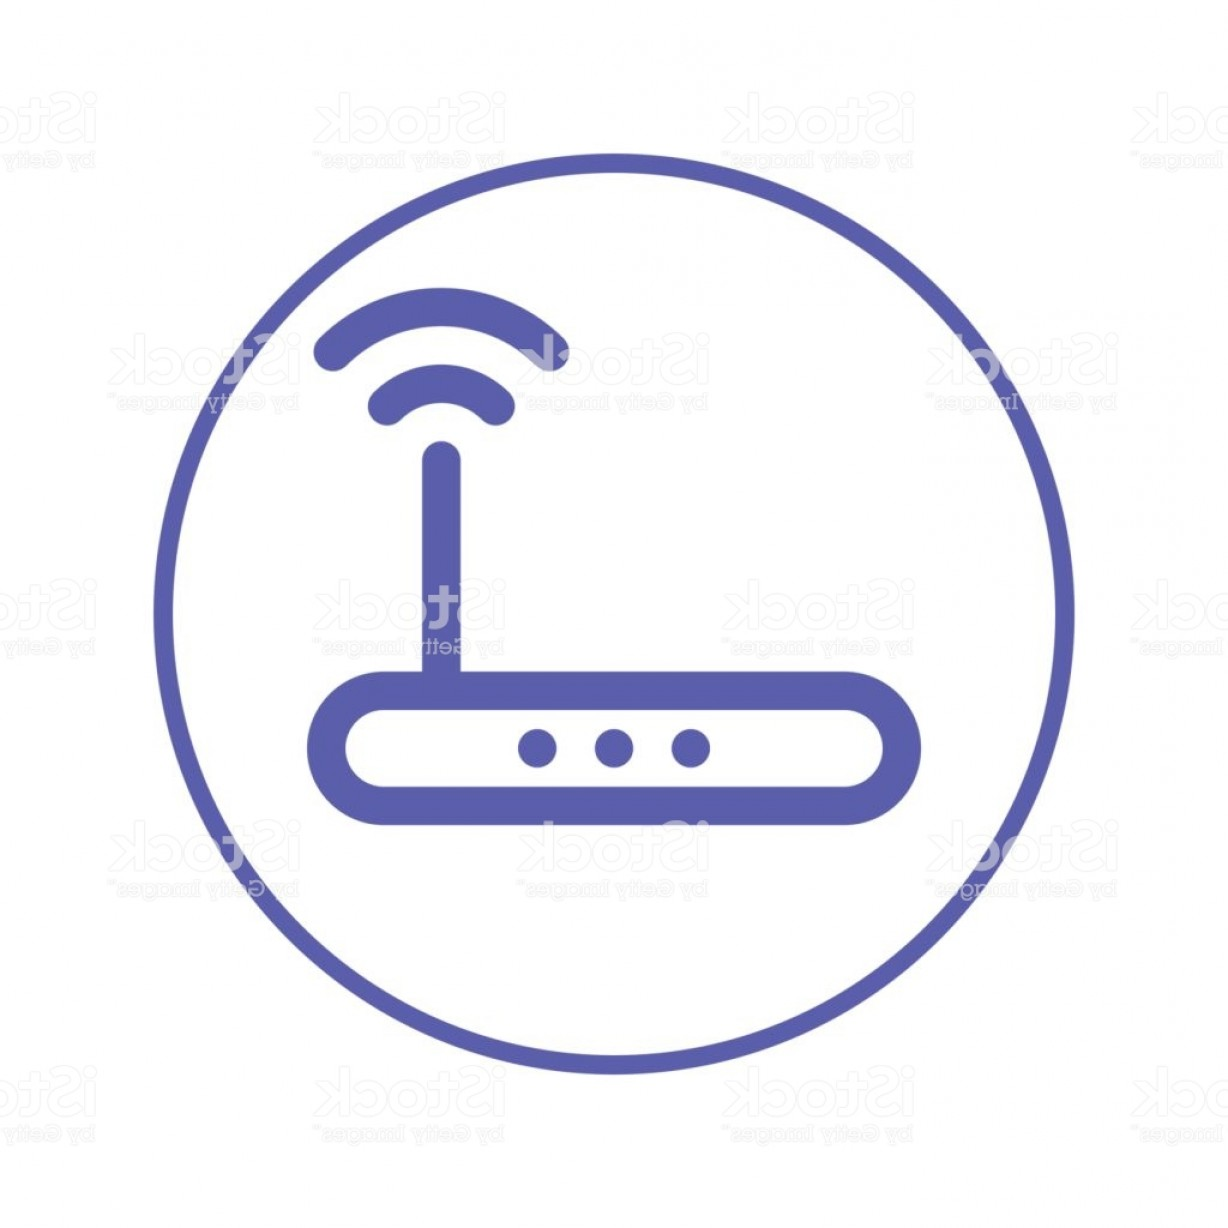 Wifi Symbol Clip Art Vector: Wireless Wi Fi Router Circular Line Icon Round Sign High Speed Internet Connection Gm